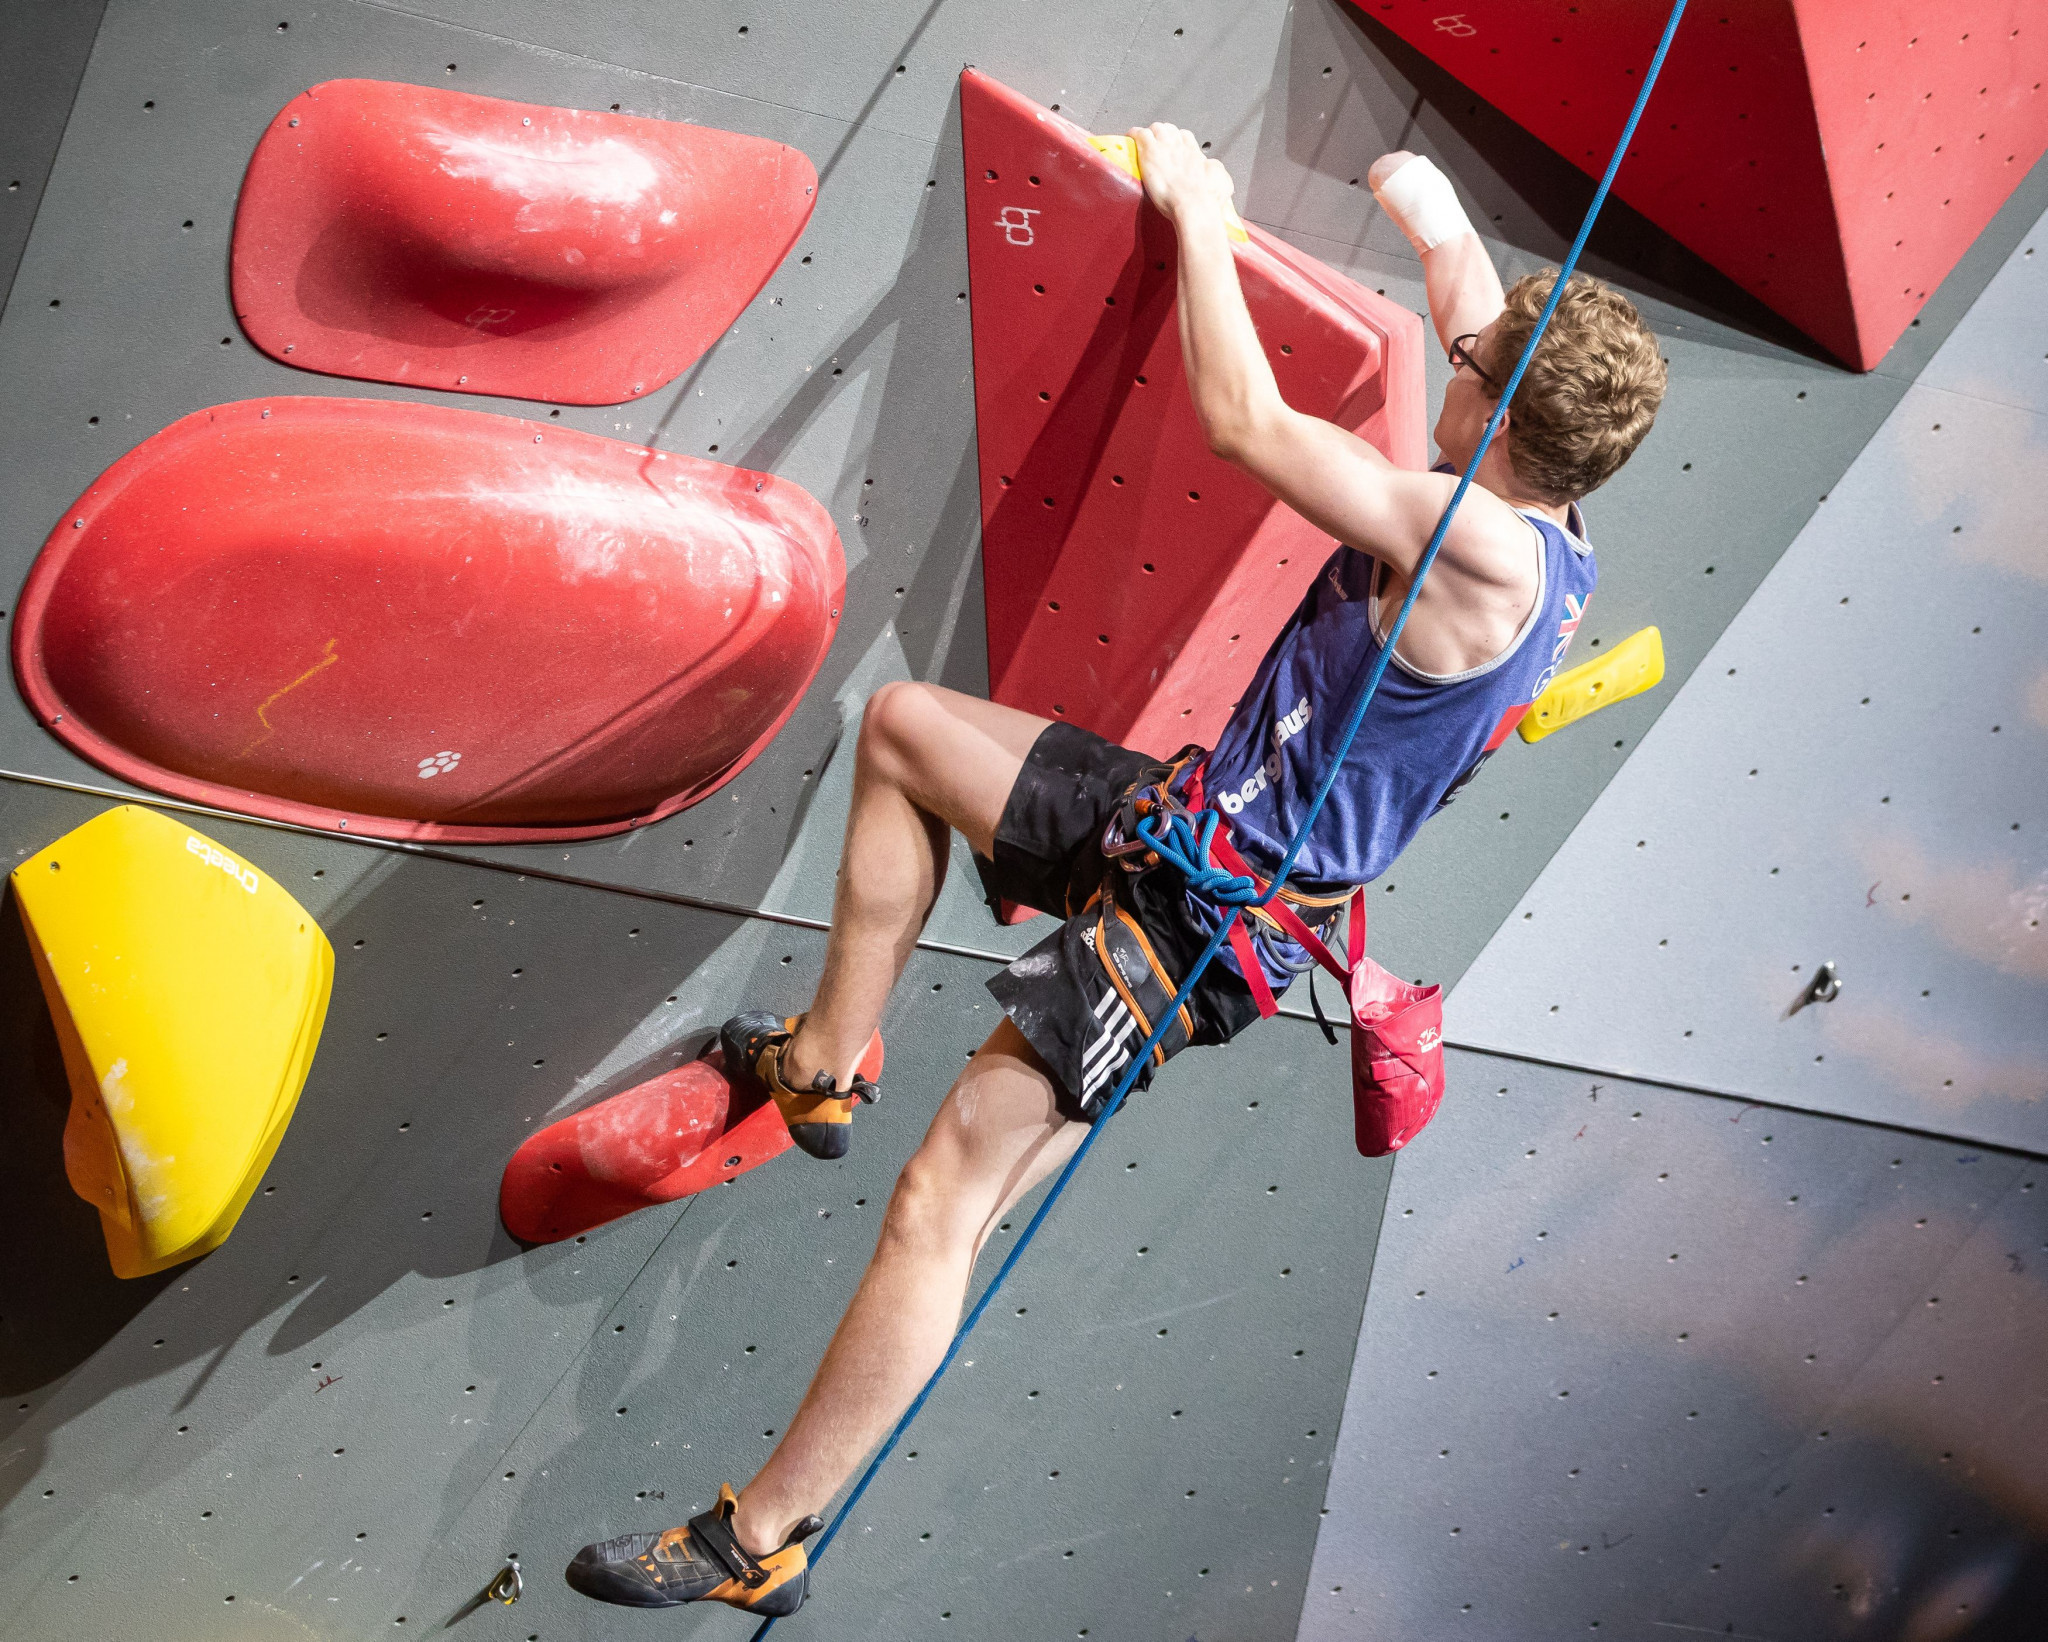 Paraclimbing World Cup awarded to Los Angeles as IFSC promotes sport for 2028 inclusion